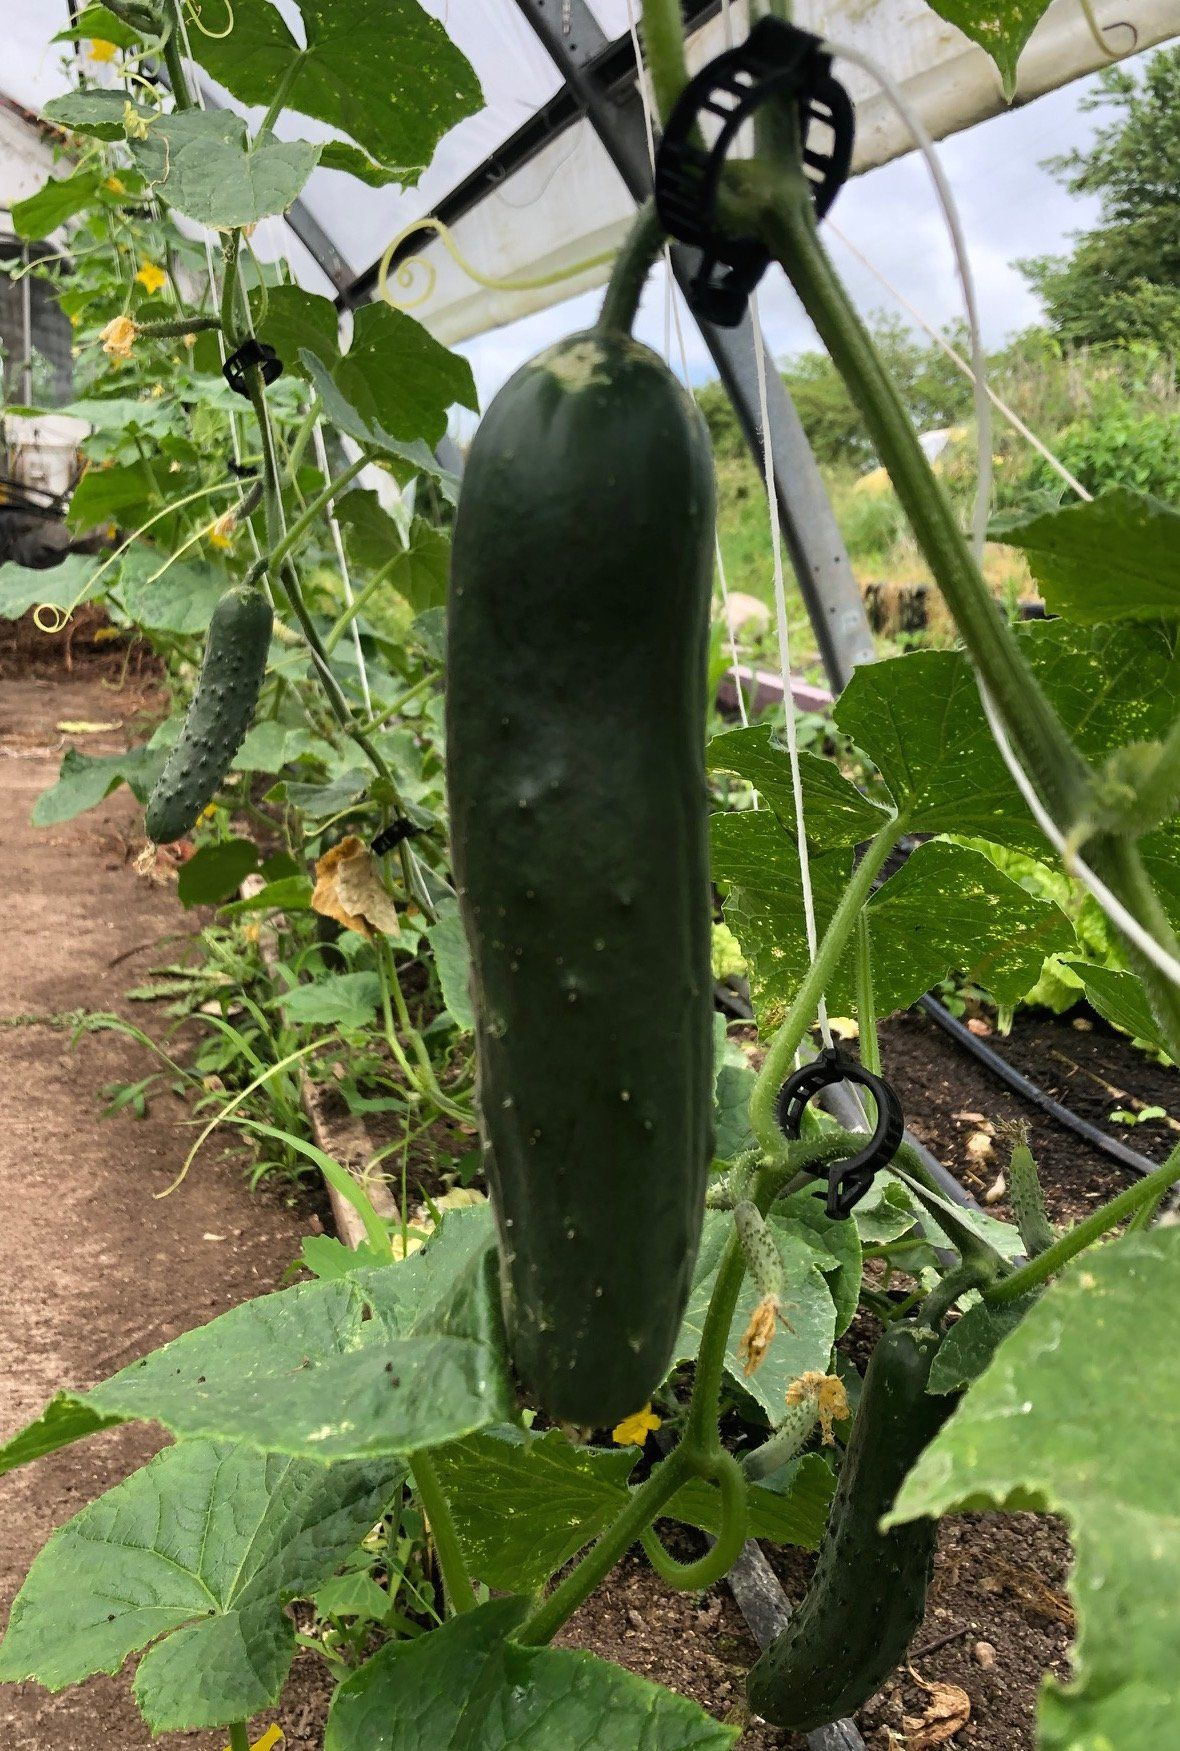 Farm Happenings for May 29, 2020